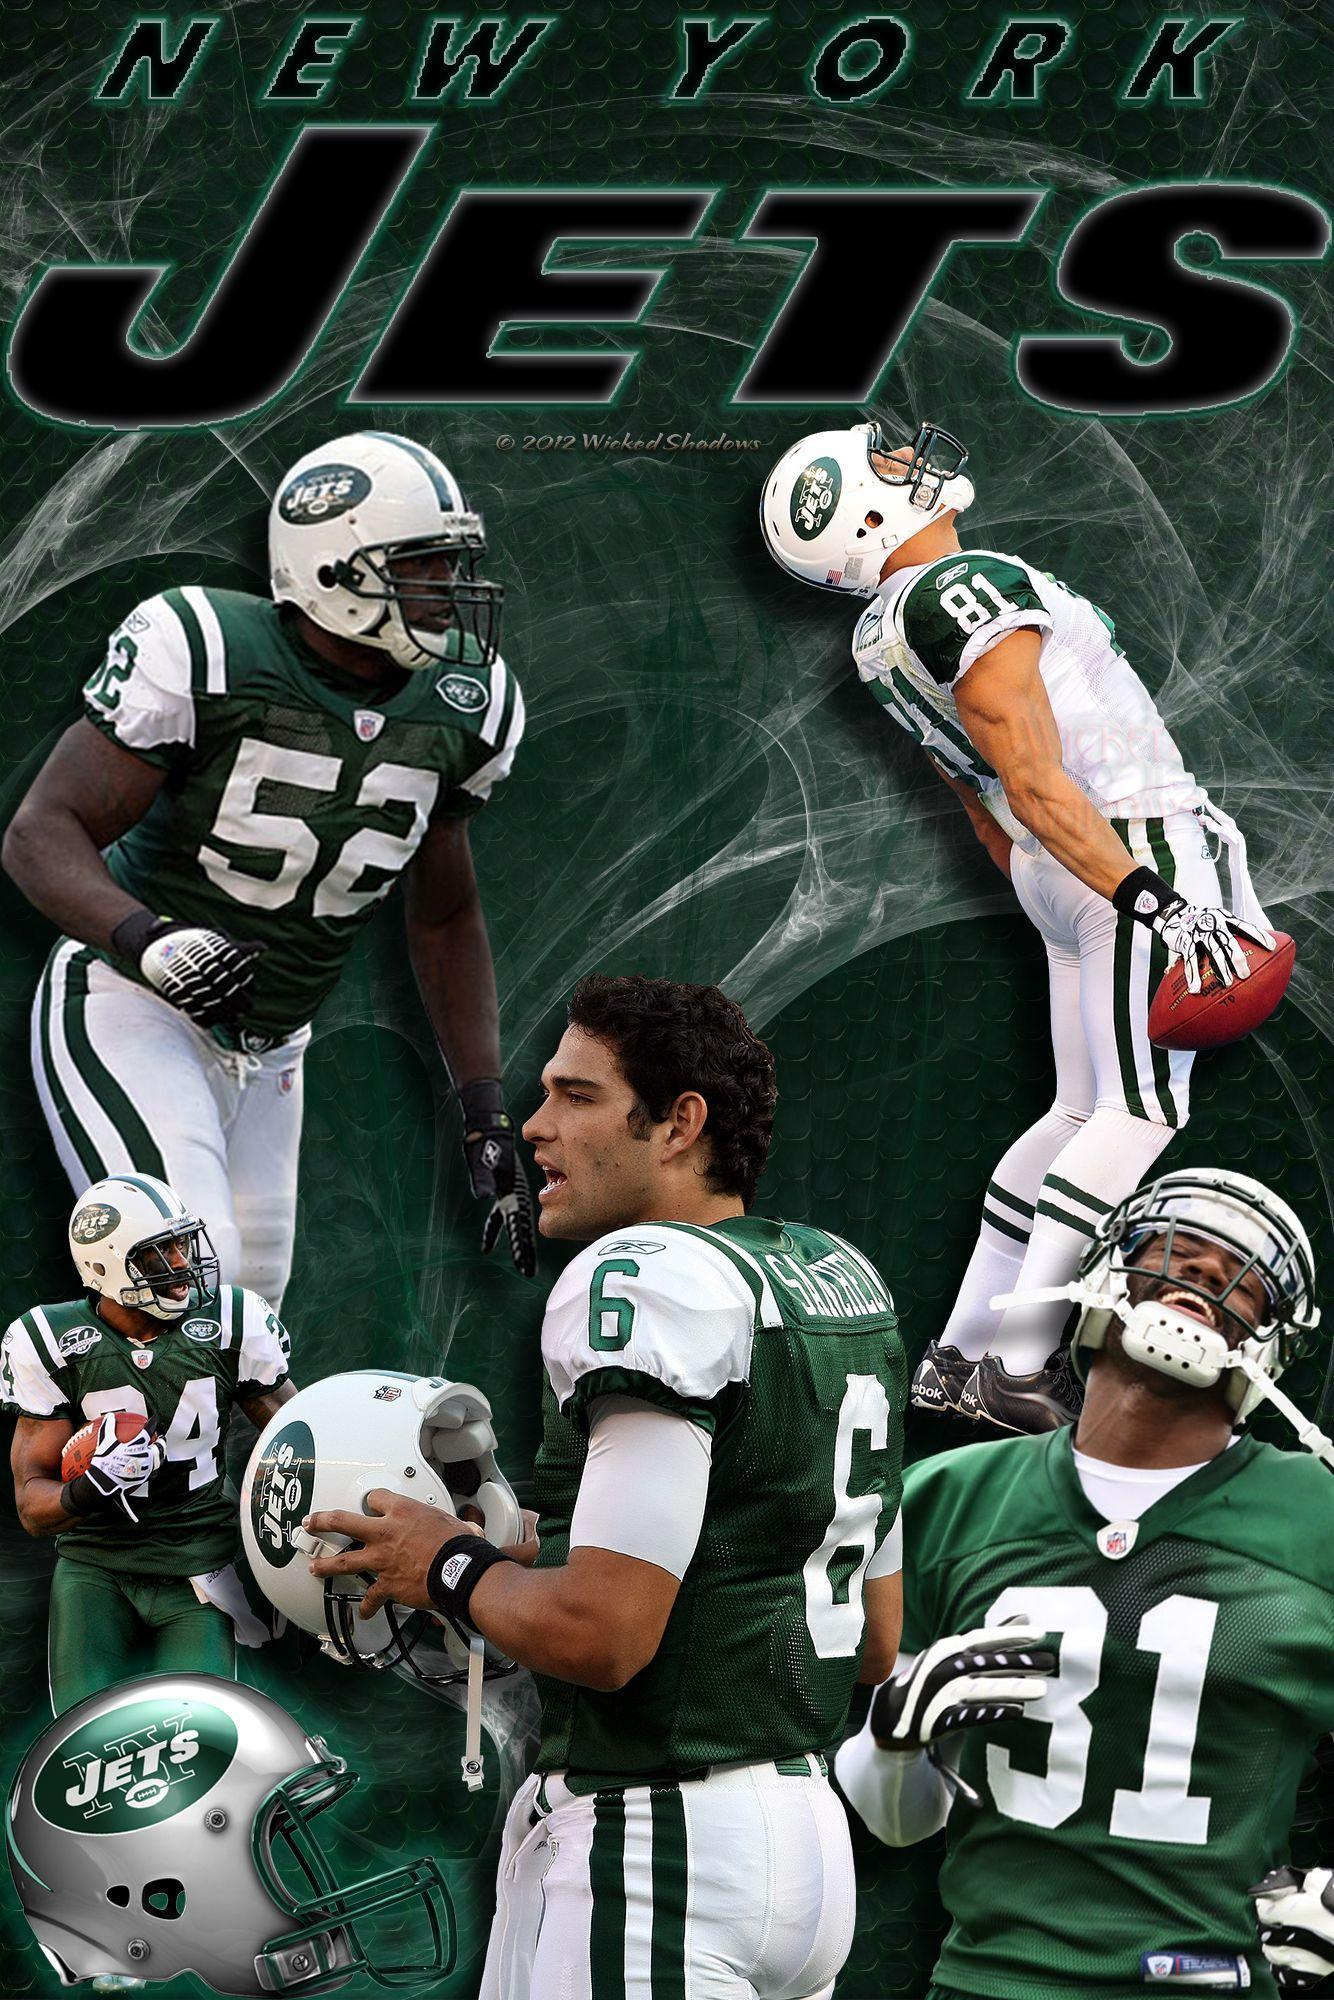 Wallpapers By Wicked Shadows: New York Jets Team Wallpapers